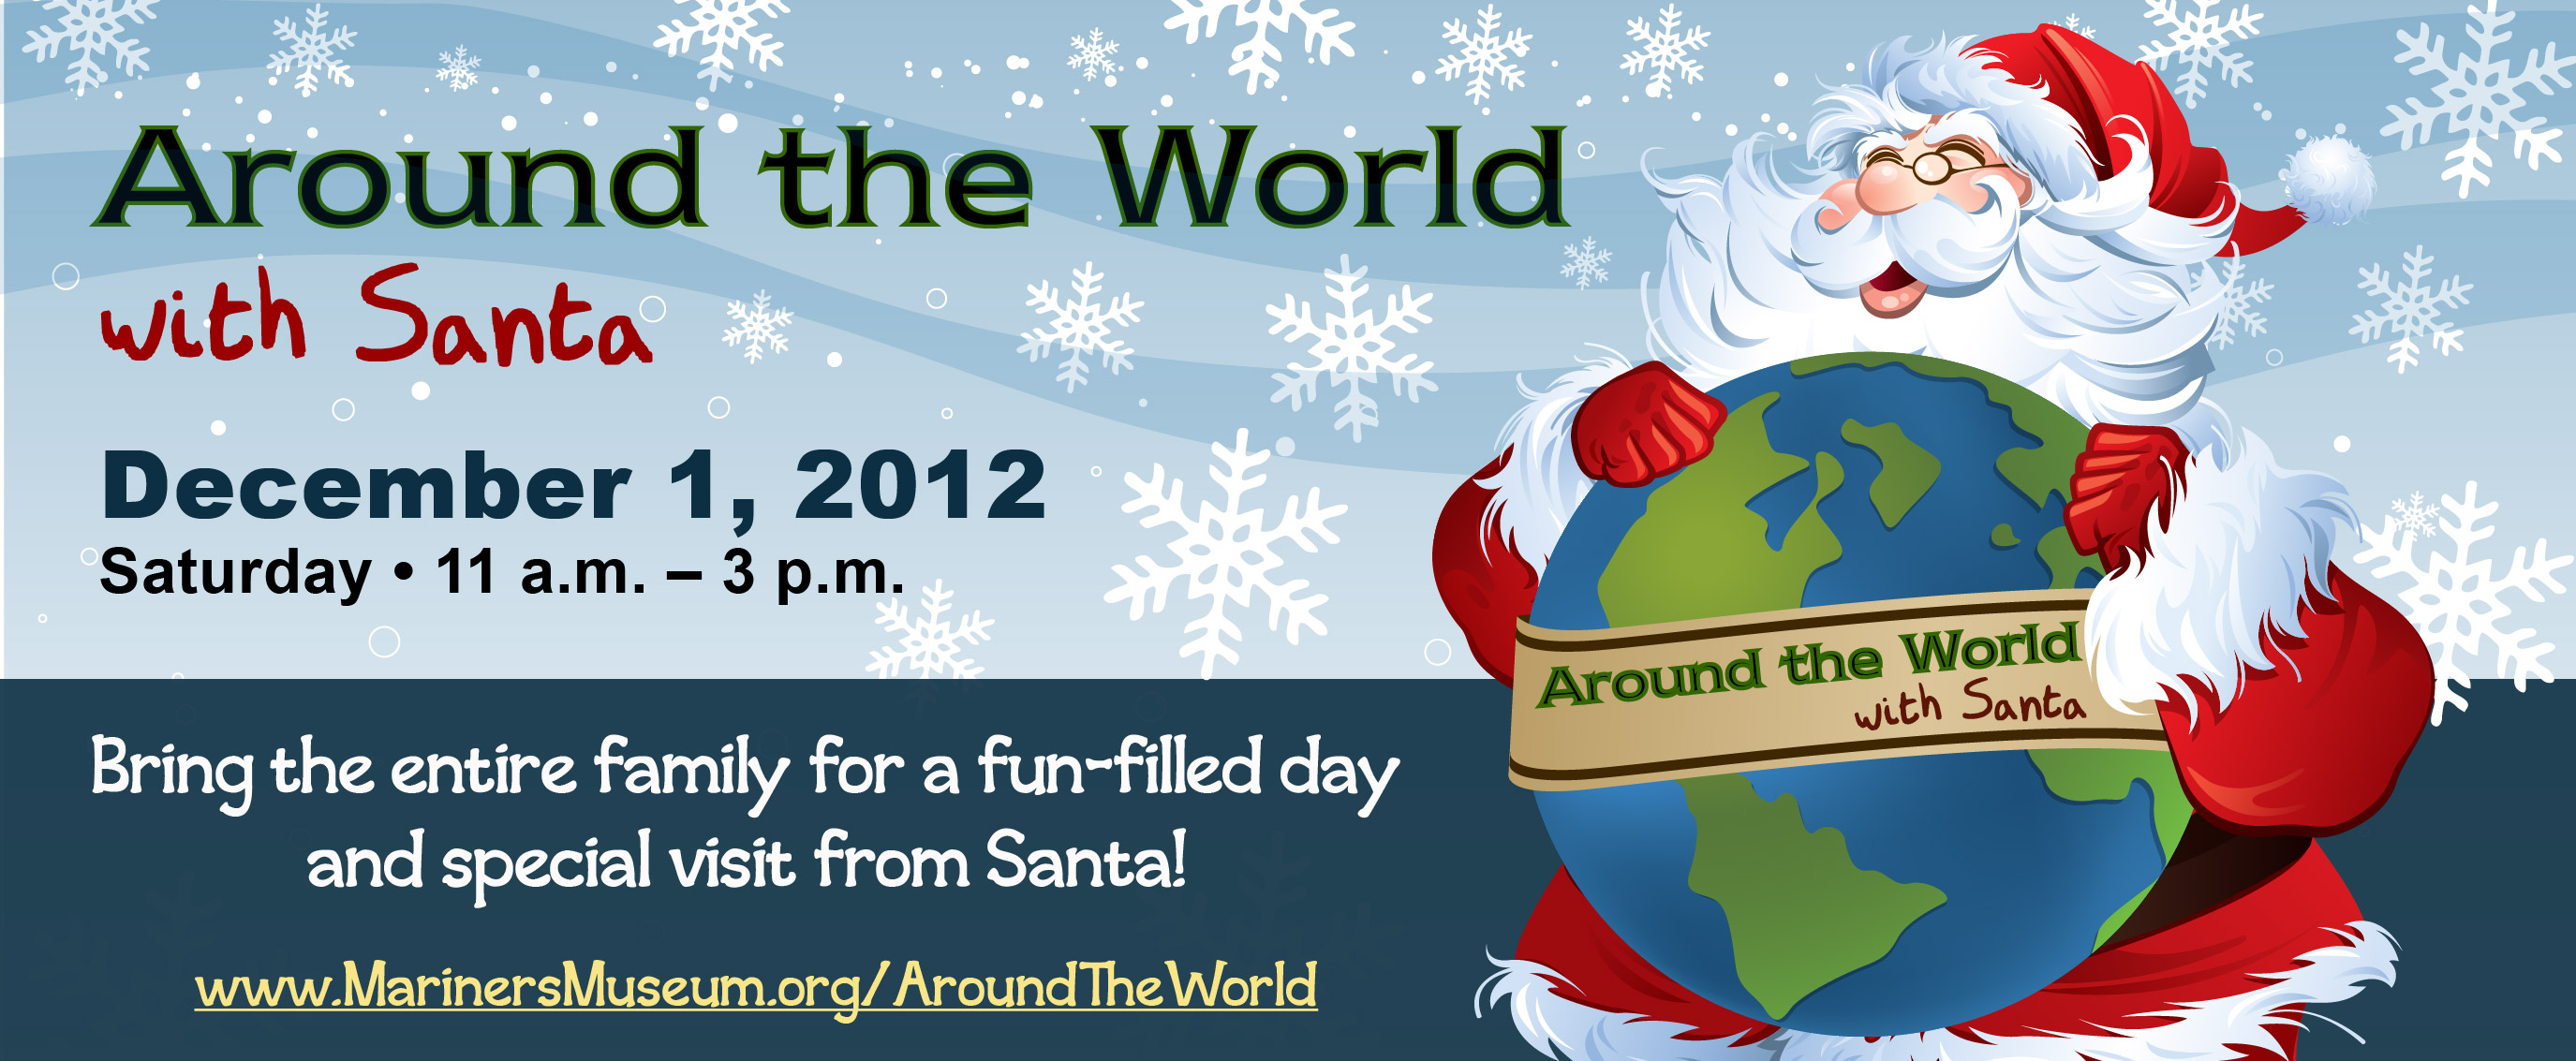 around the world with santa